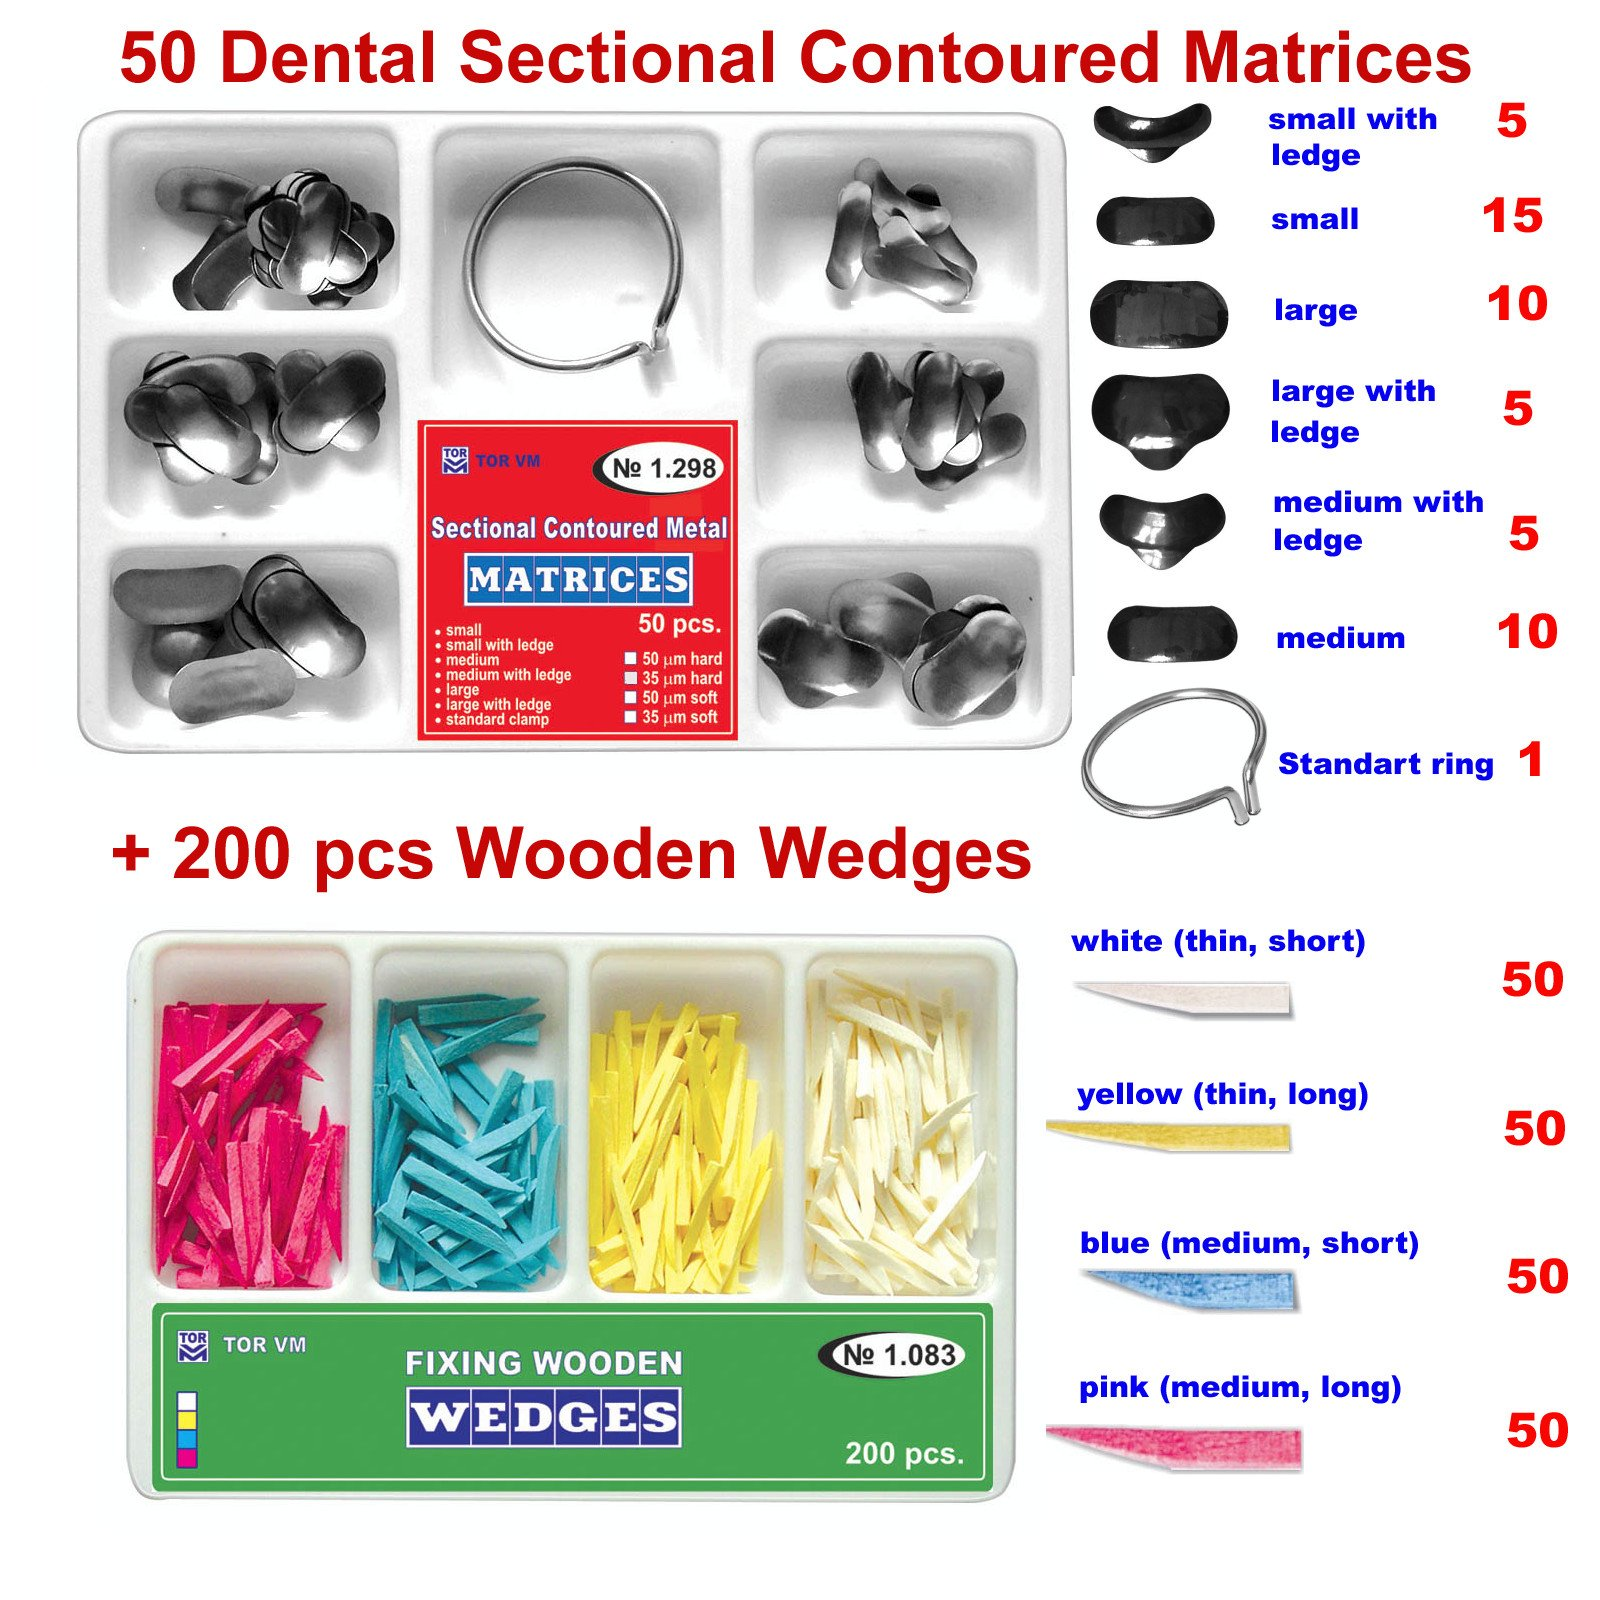 7299481b0ea Get Quotations · 50 of Dental Sectional Contoured Matrices Matrix + 200  Wooden Wedges